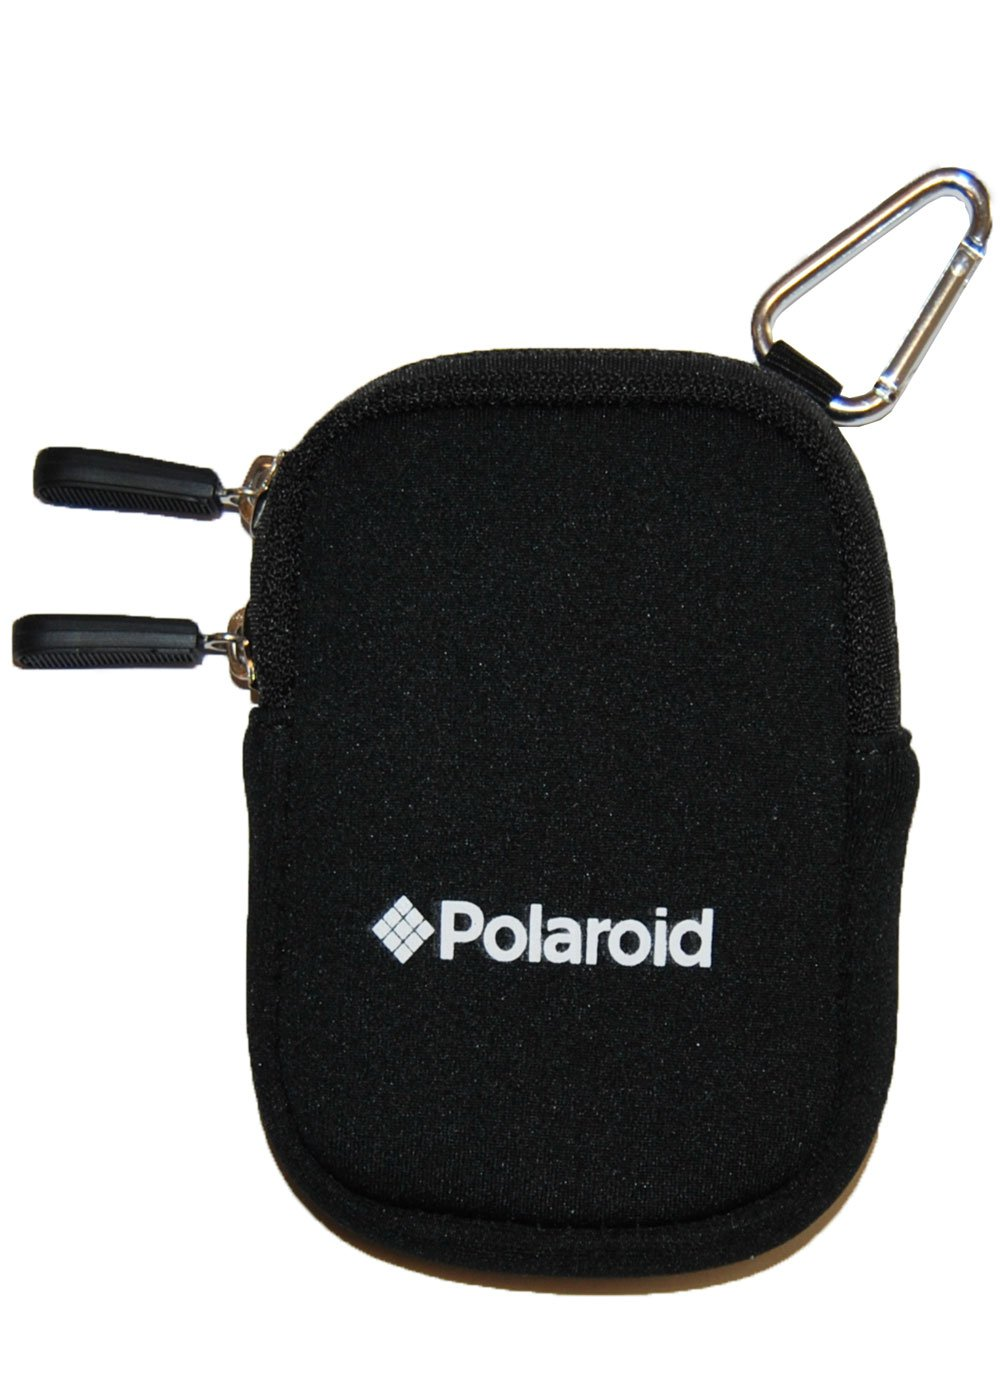 Polaroid Neoprene Cushioned Ultra Compact Camera Pouch (Compatible With Polaroid i1237, i1036, i1437, t1031, t1455, t1242, t1255, t1234 and all other compact cameras)